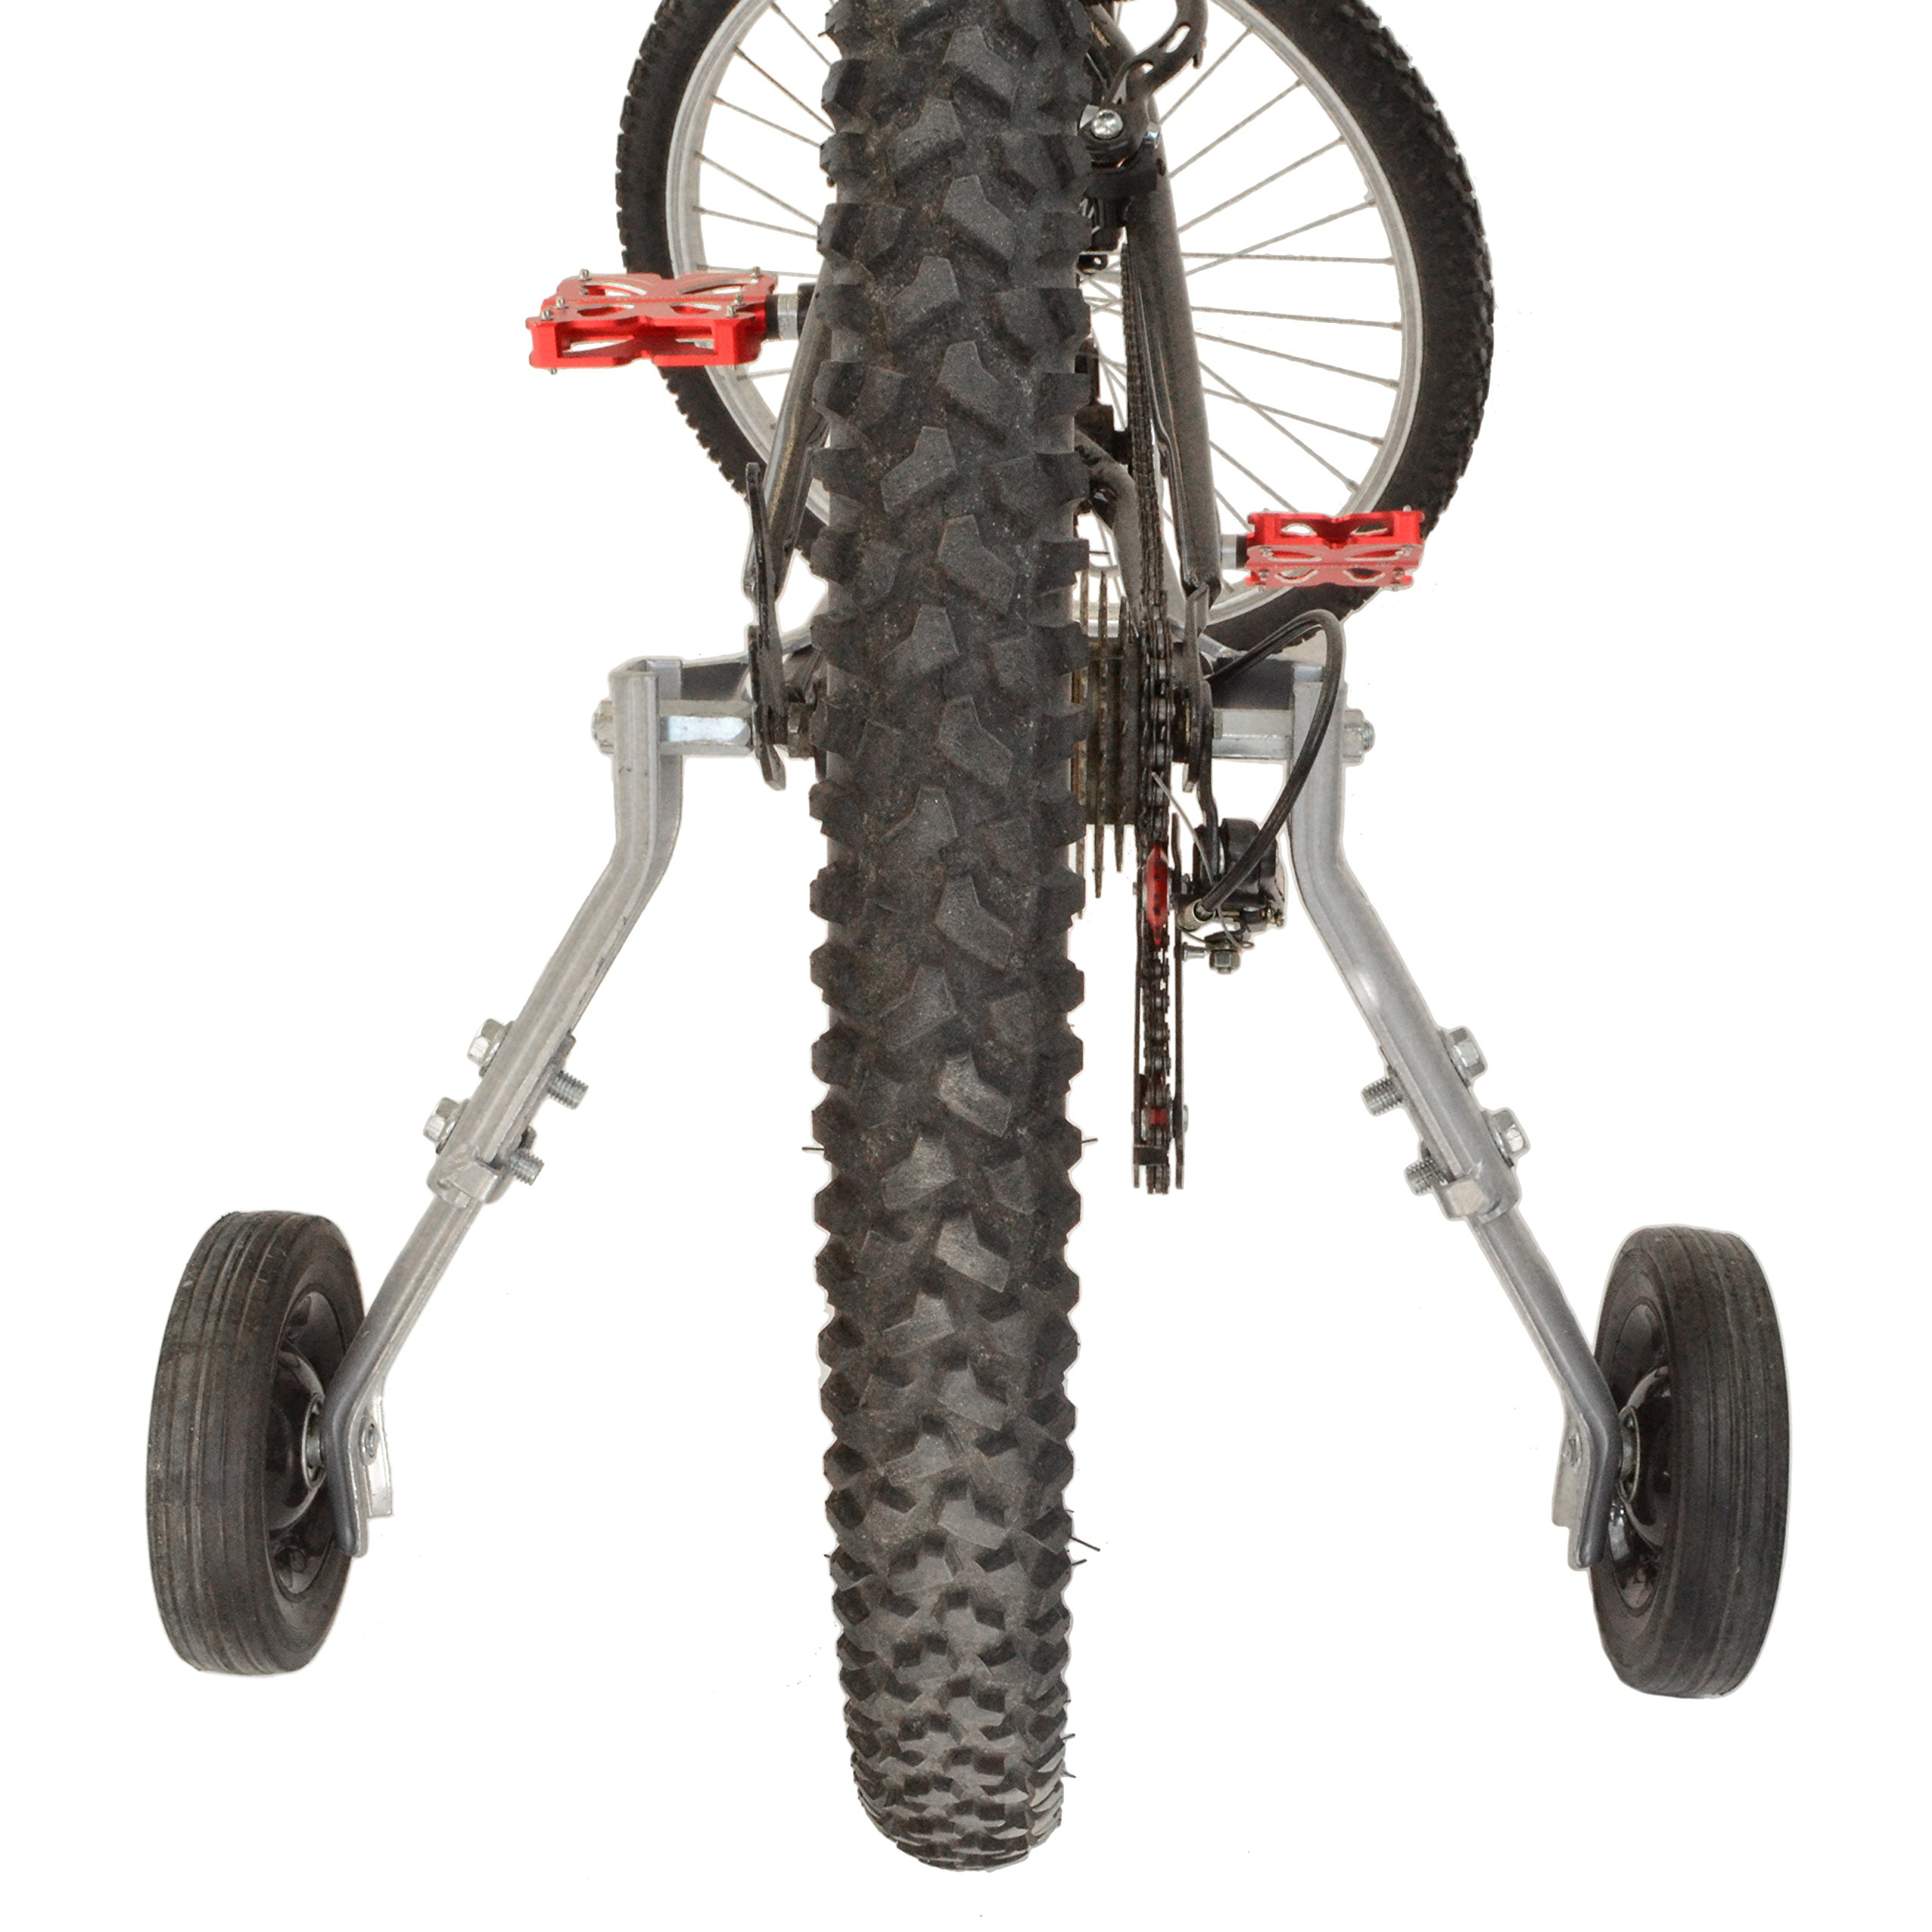 """Lumintrail Heavy Duty Adjustable Bike Training Wheels for 20"""" to 26"""" Bicycles by Lumintrail (Image #2)"""